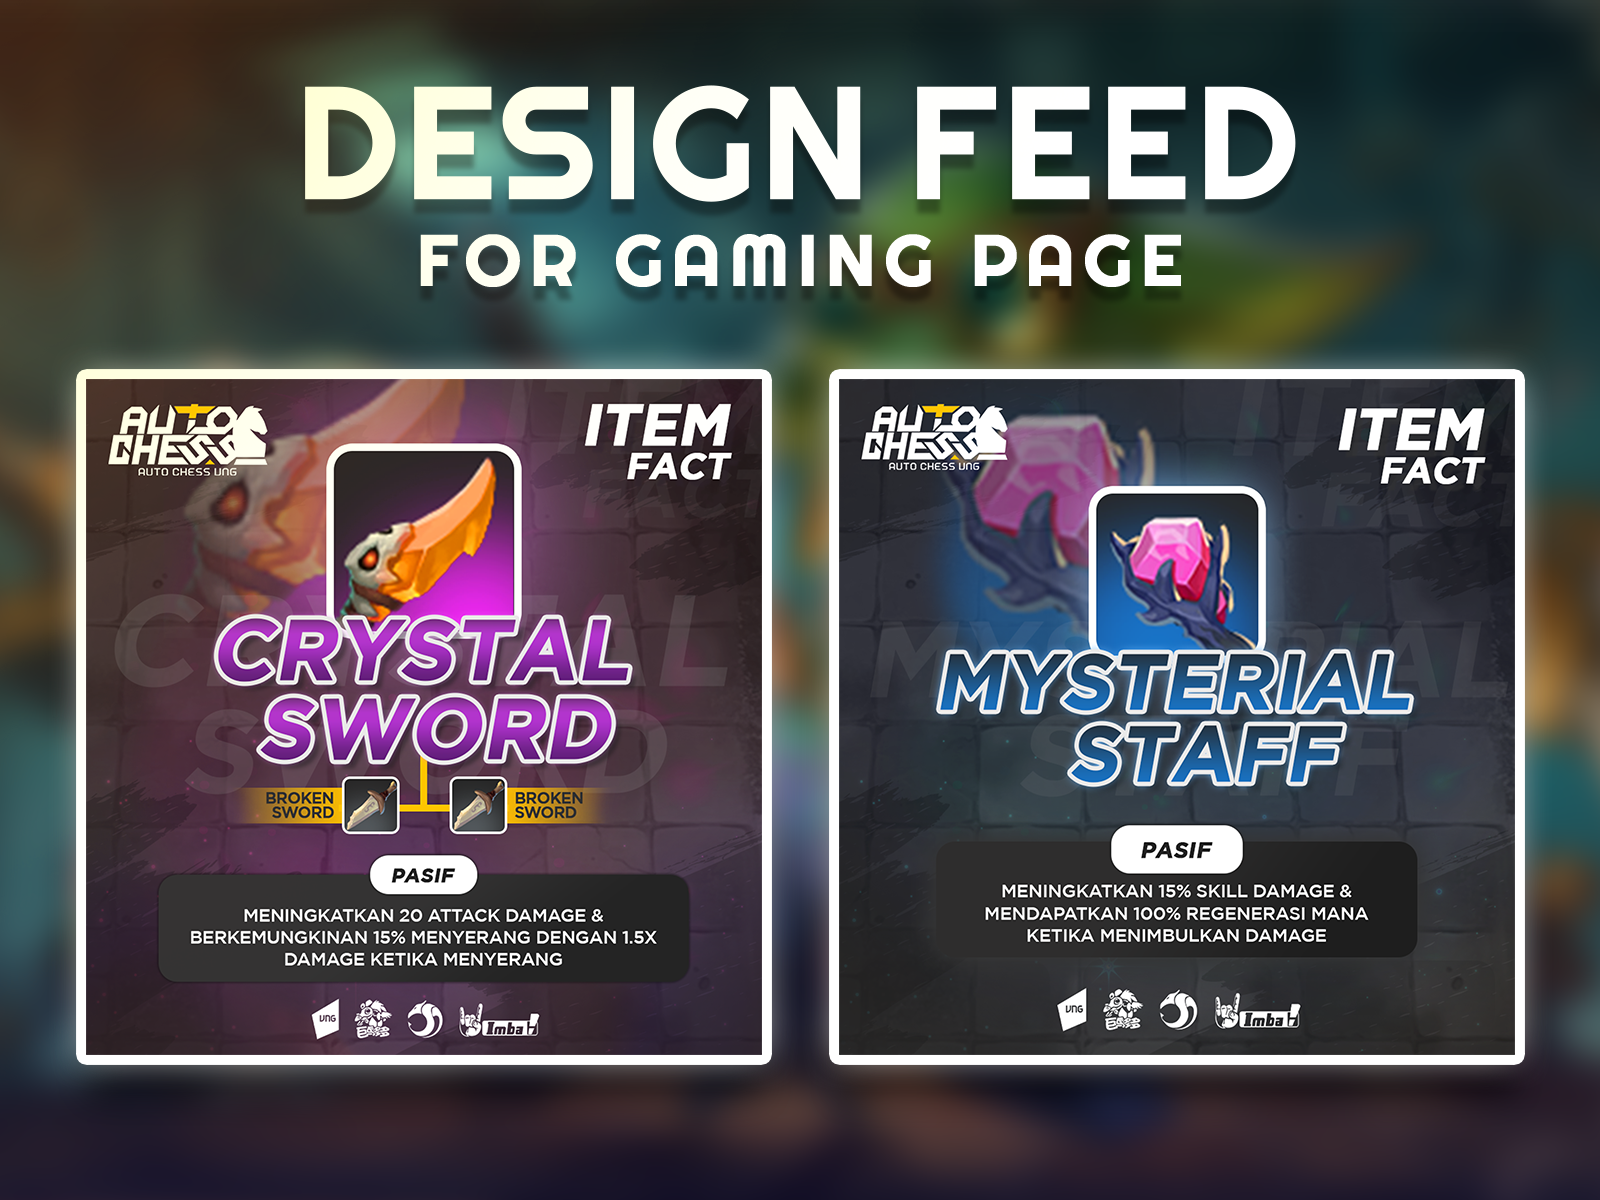 Design For Social Media Game Fanpage Feed Post By Nanda Syah On Dribbble